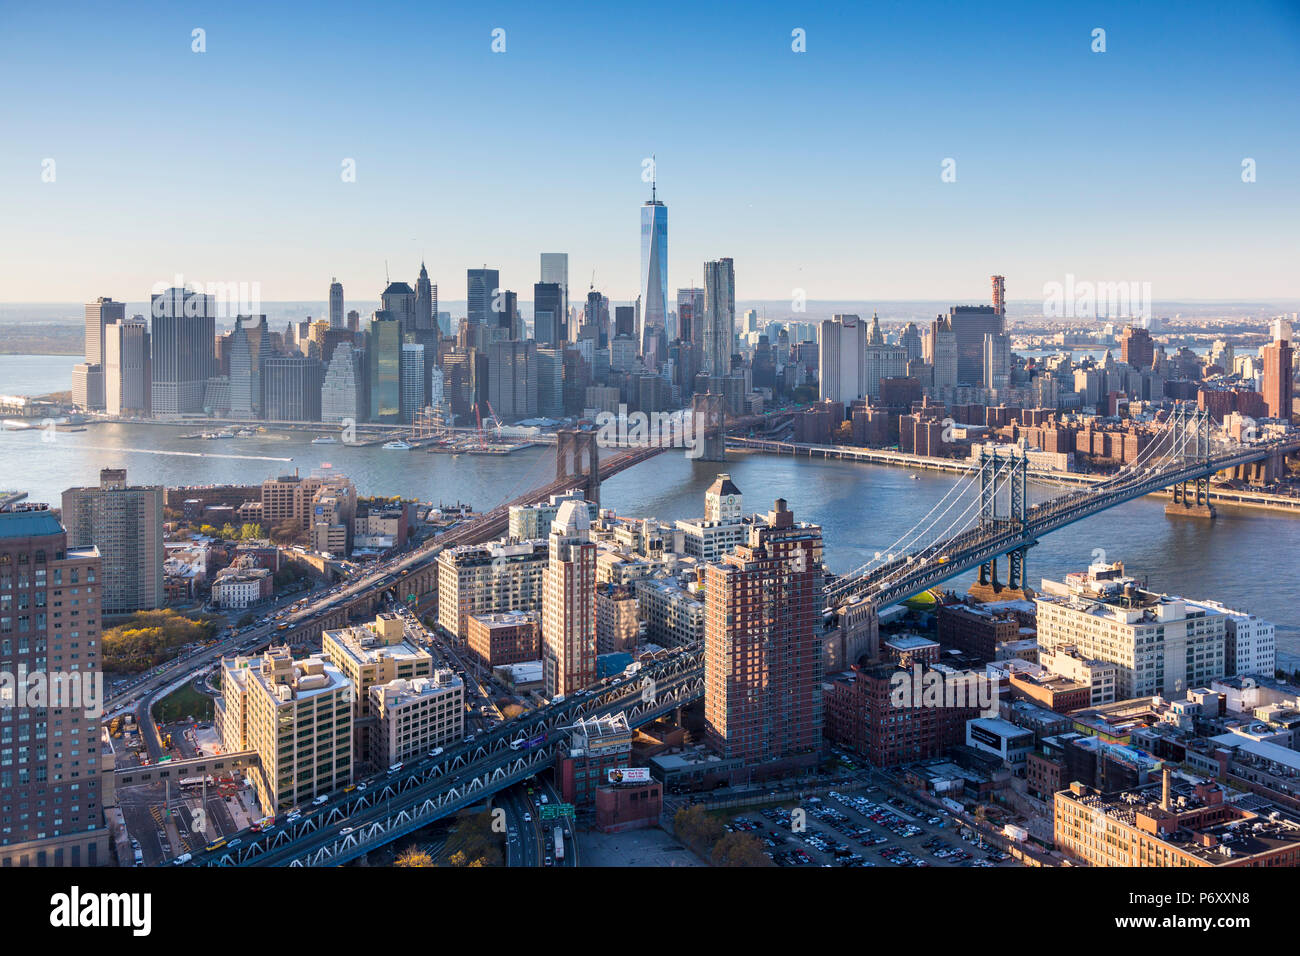 Downtown Manhattan and Brooklyn, New York City, USA - Stock Image